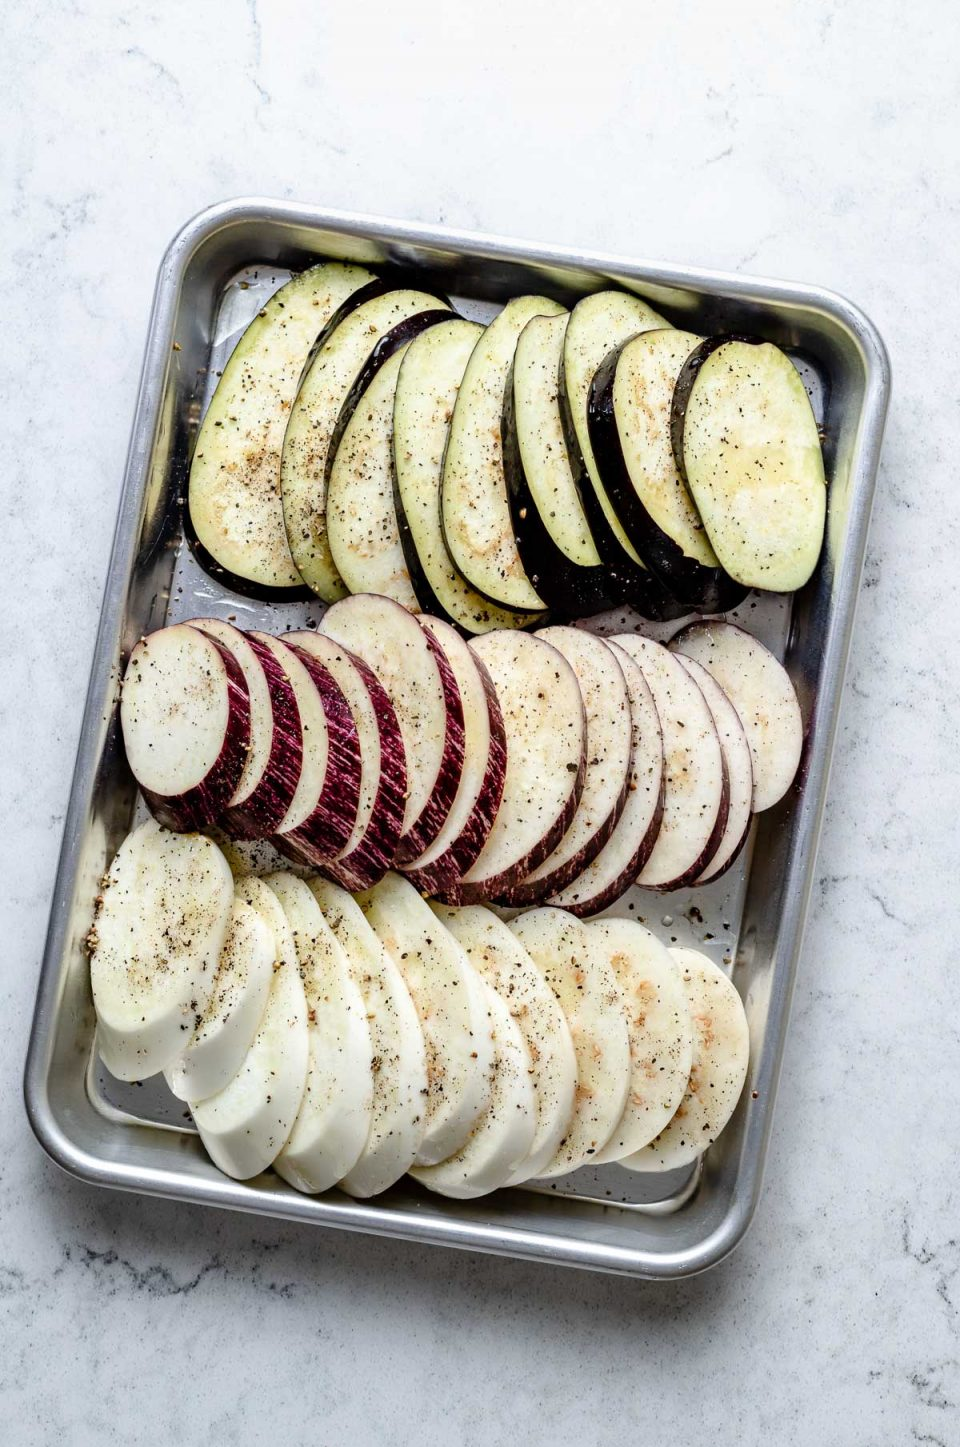 Fresh & raw eggplant sliced in rounds seasoned with avocado oil, kosher salt, & ground black pepper arranged on an aluminum baking sheet. The baking sheet sits on top of a white & gray marble surface.